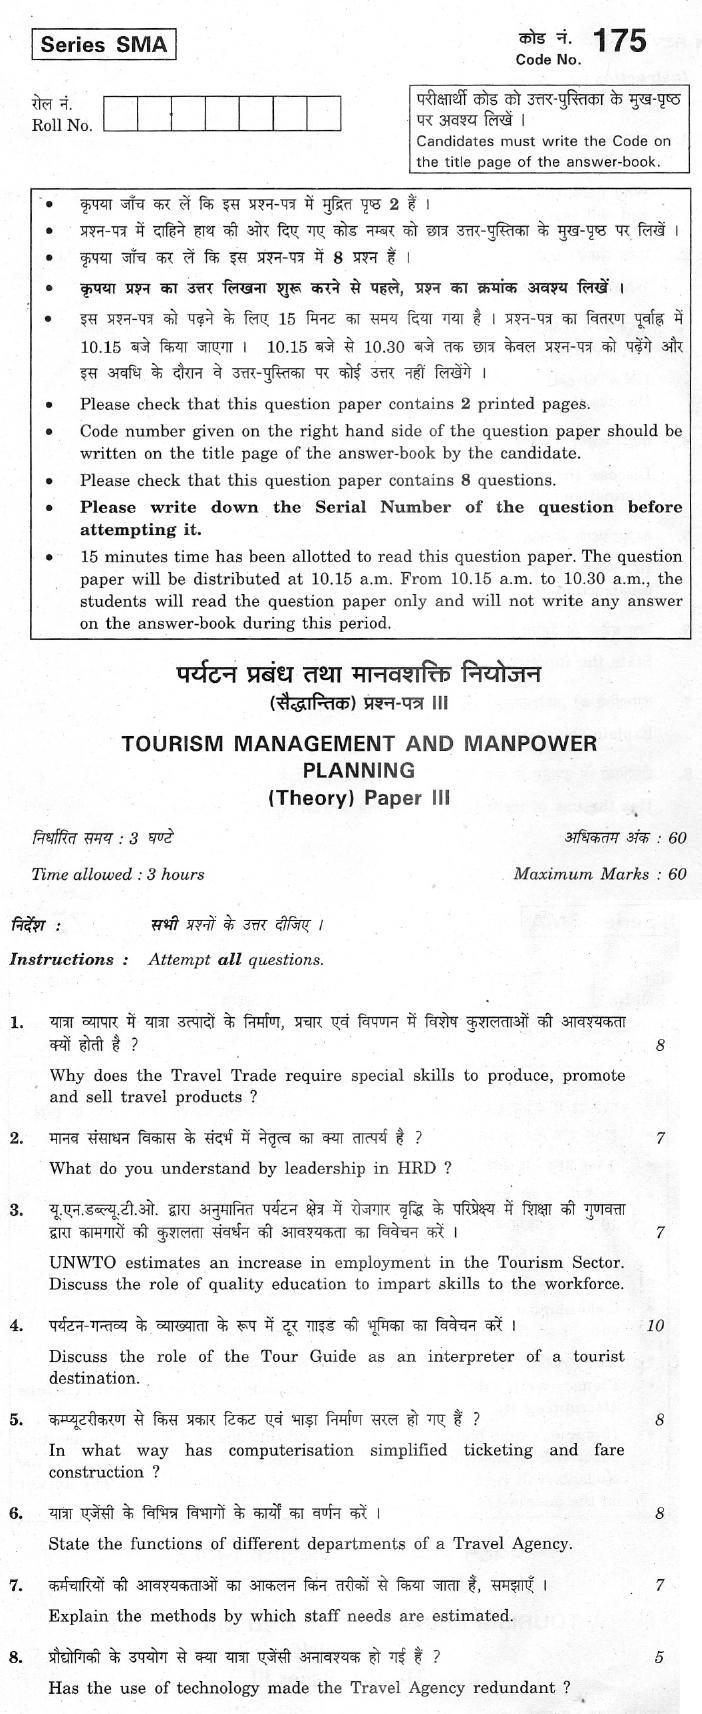 CBSE Class XII Previous Year Question Paper 2012 Tourism Management and Manpower Planning Paper III